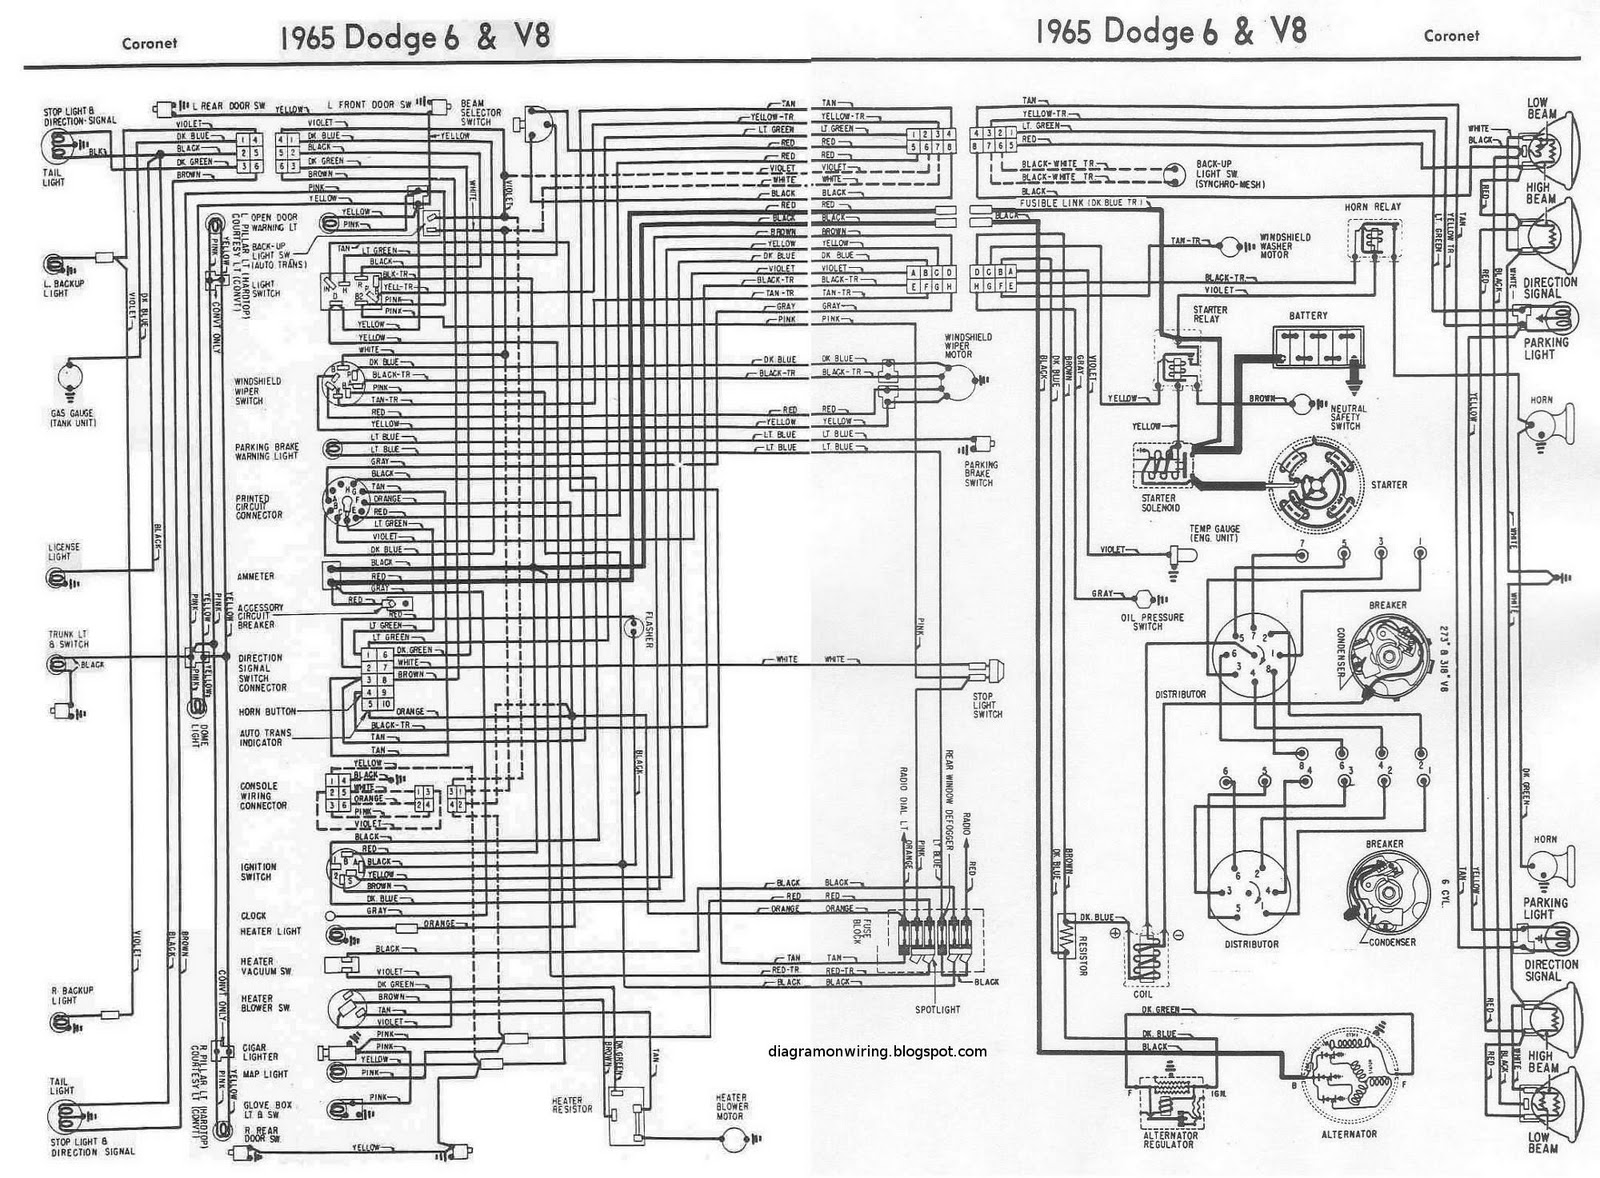 1965+Dodge+6+and+V8+Coronet+Complete+Electrical+Wiring+Diagram dodge 6 and v8 coronet 1965 complete wiring diagram all about 1970 dodge coronet wiring diagram at metegol.co